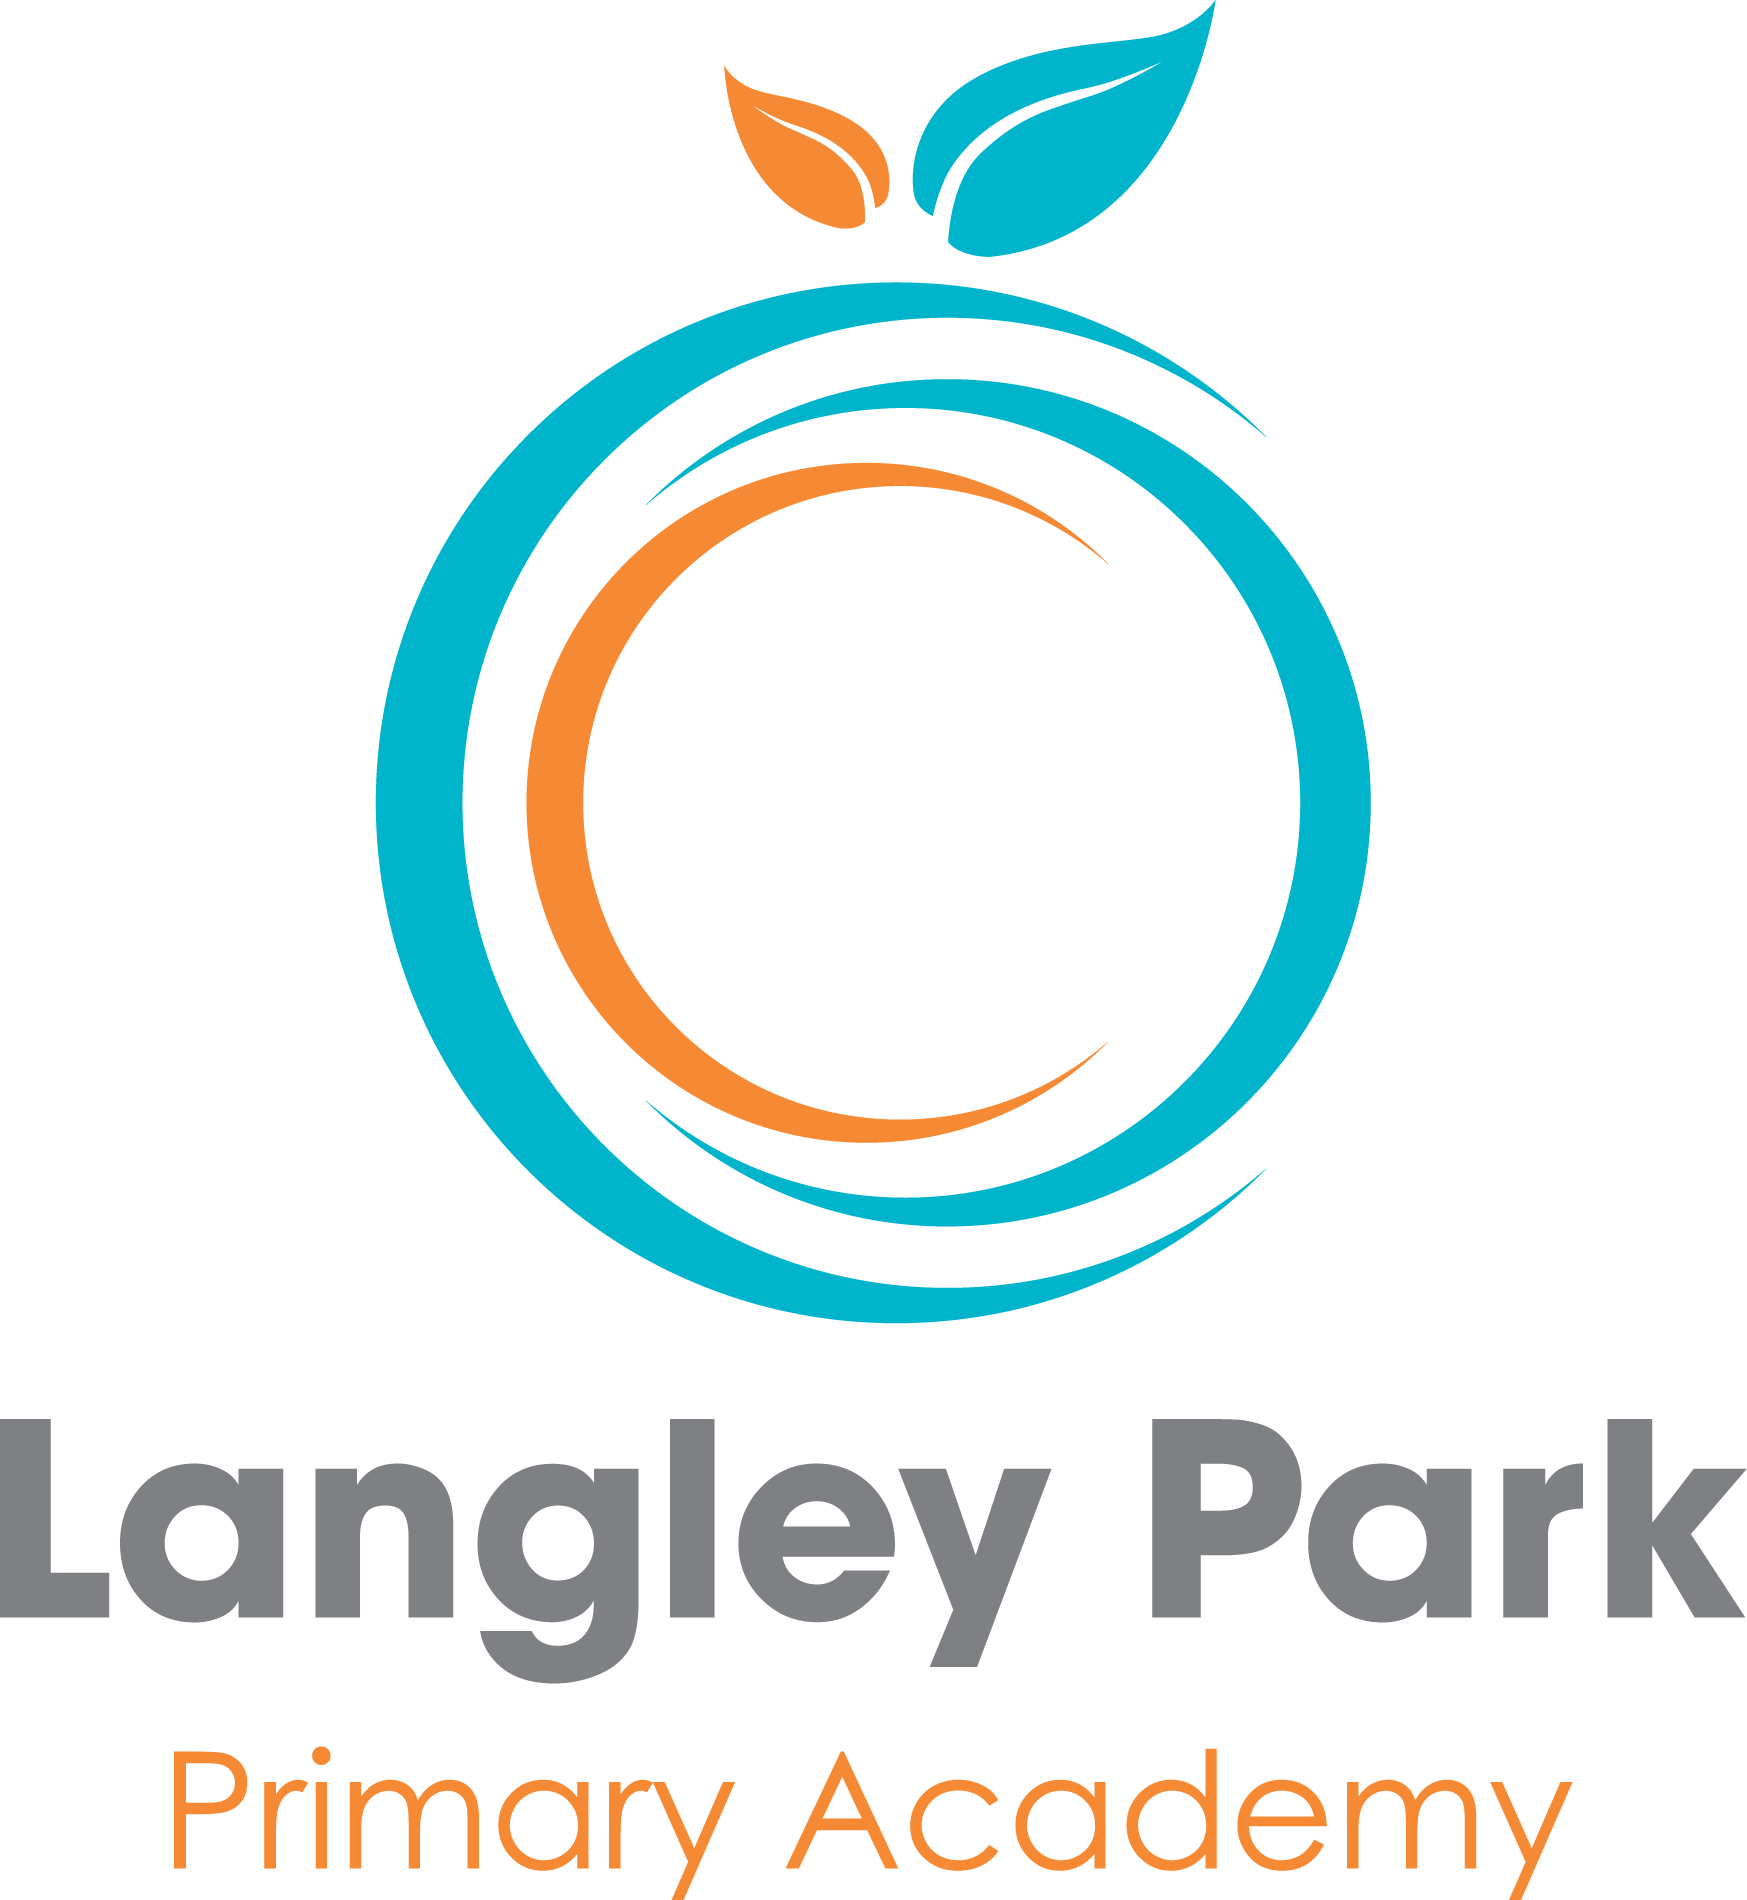 Langley Park Primary Academy